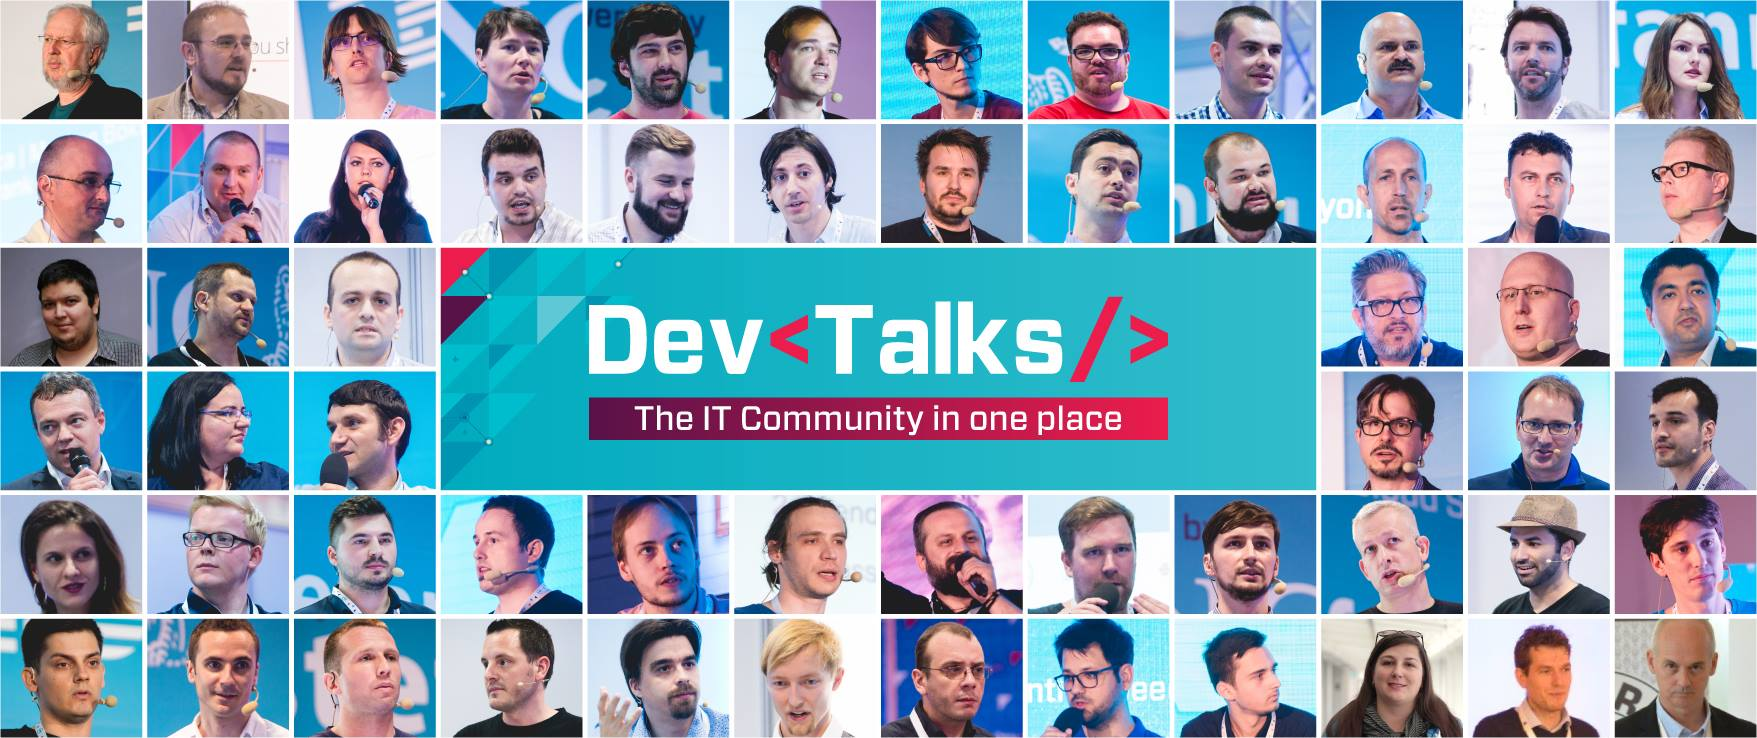 Speaking at DevTalks Bucharest in June